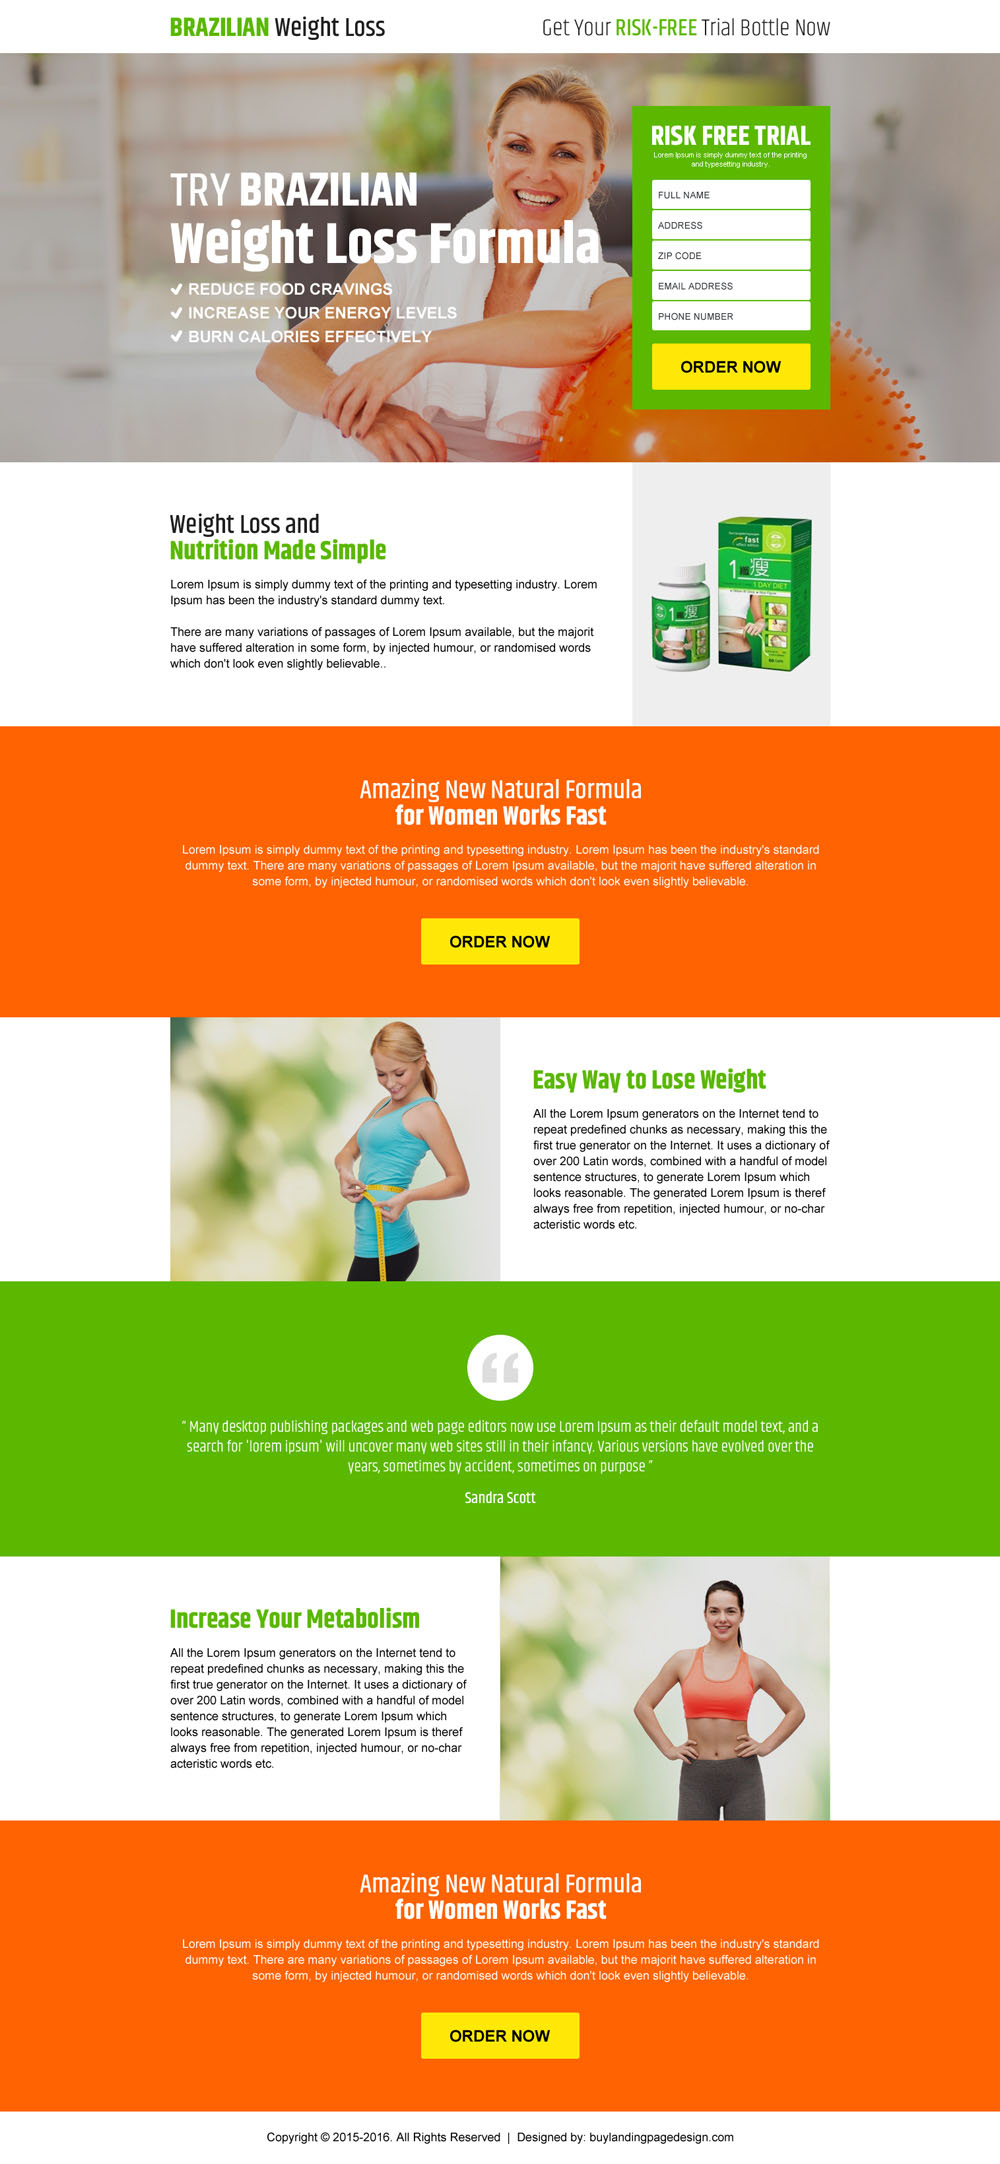 Garcinia cambogia weight loss landing page design templates for Top product design companies